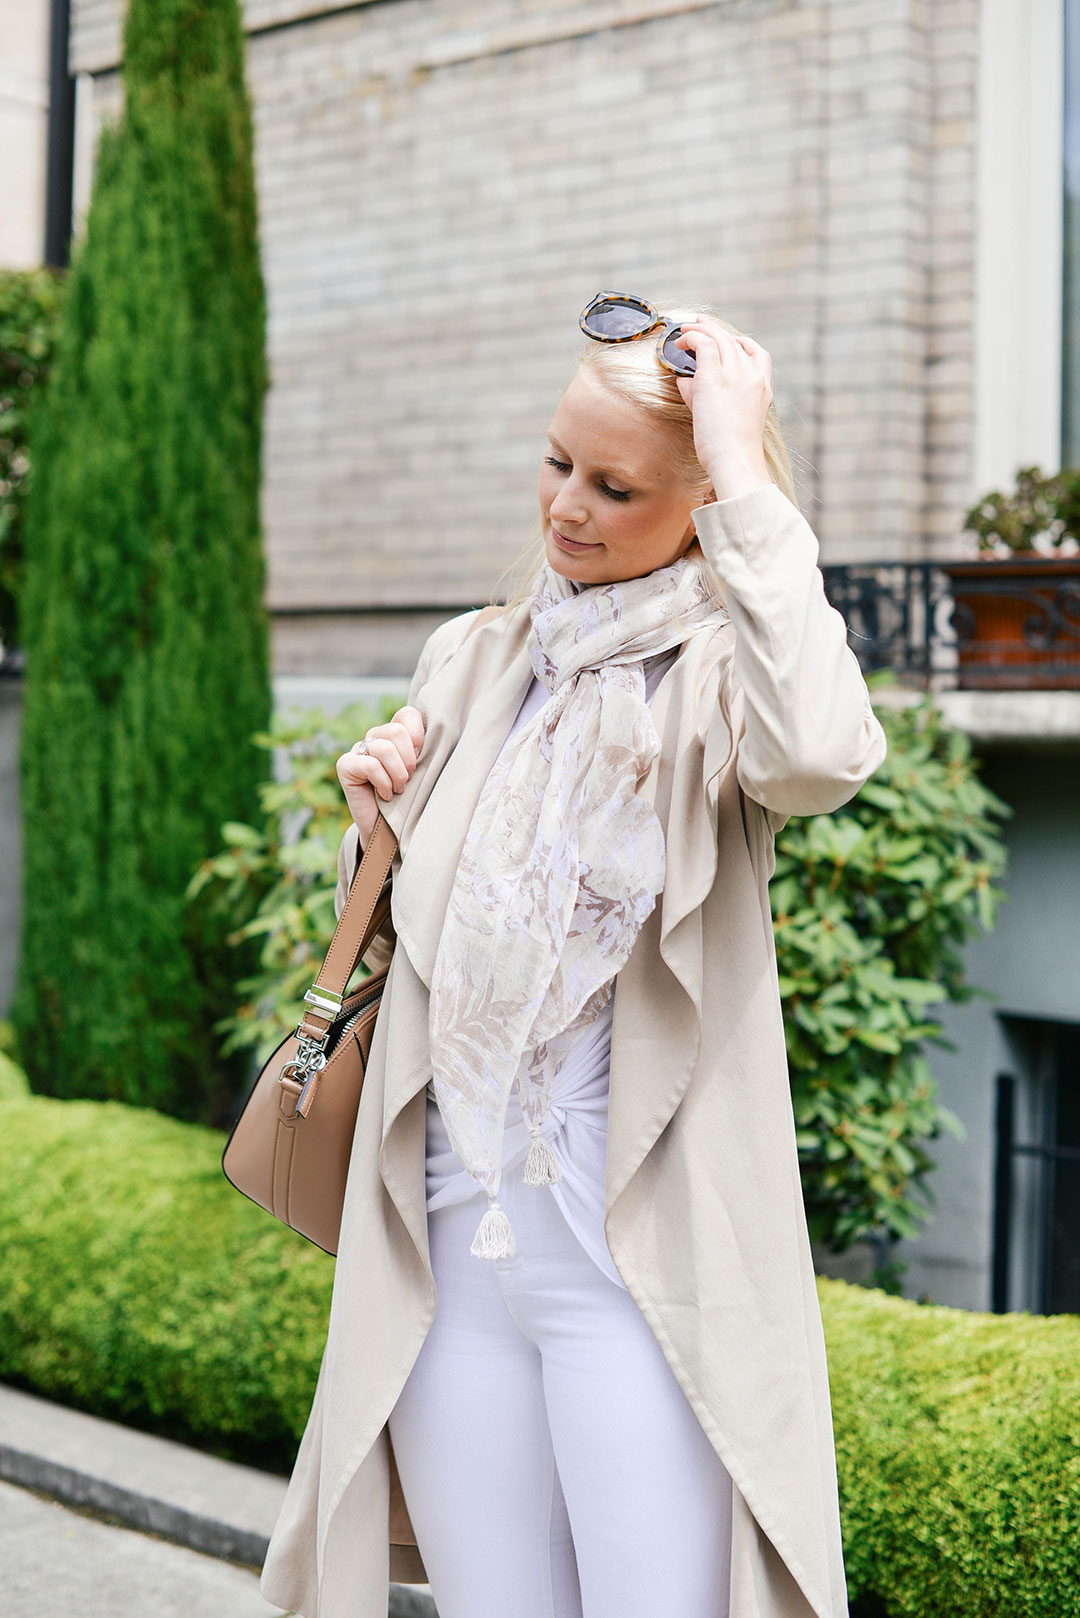 Seattle Travel Style | The Style Scribe